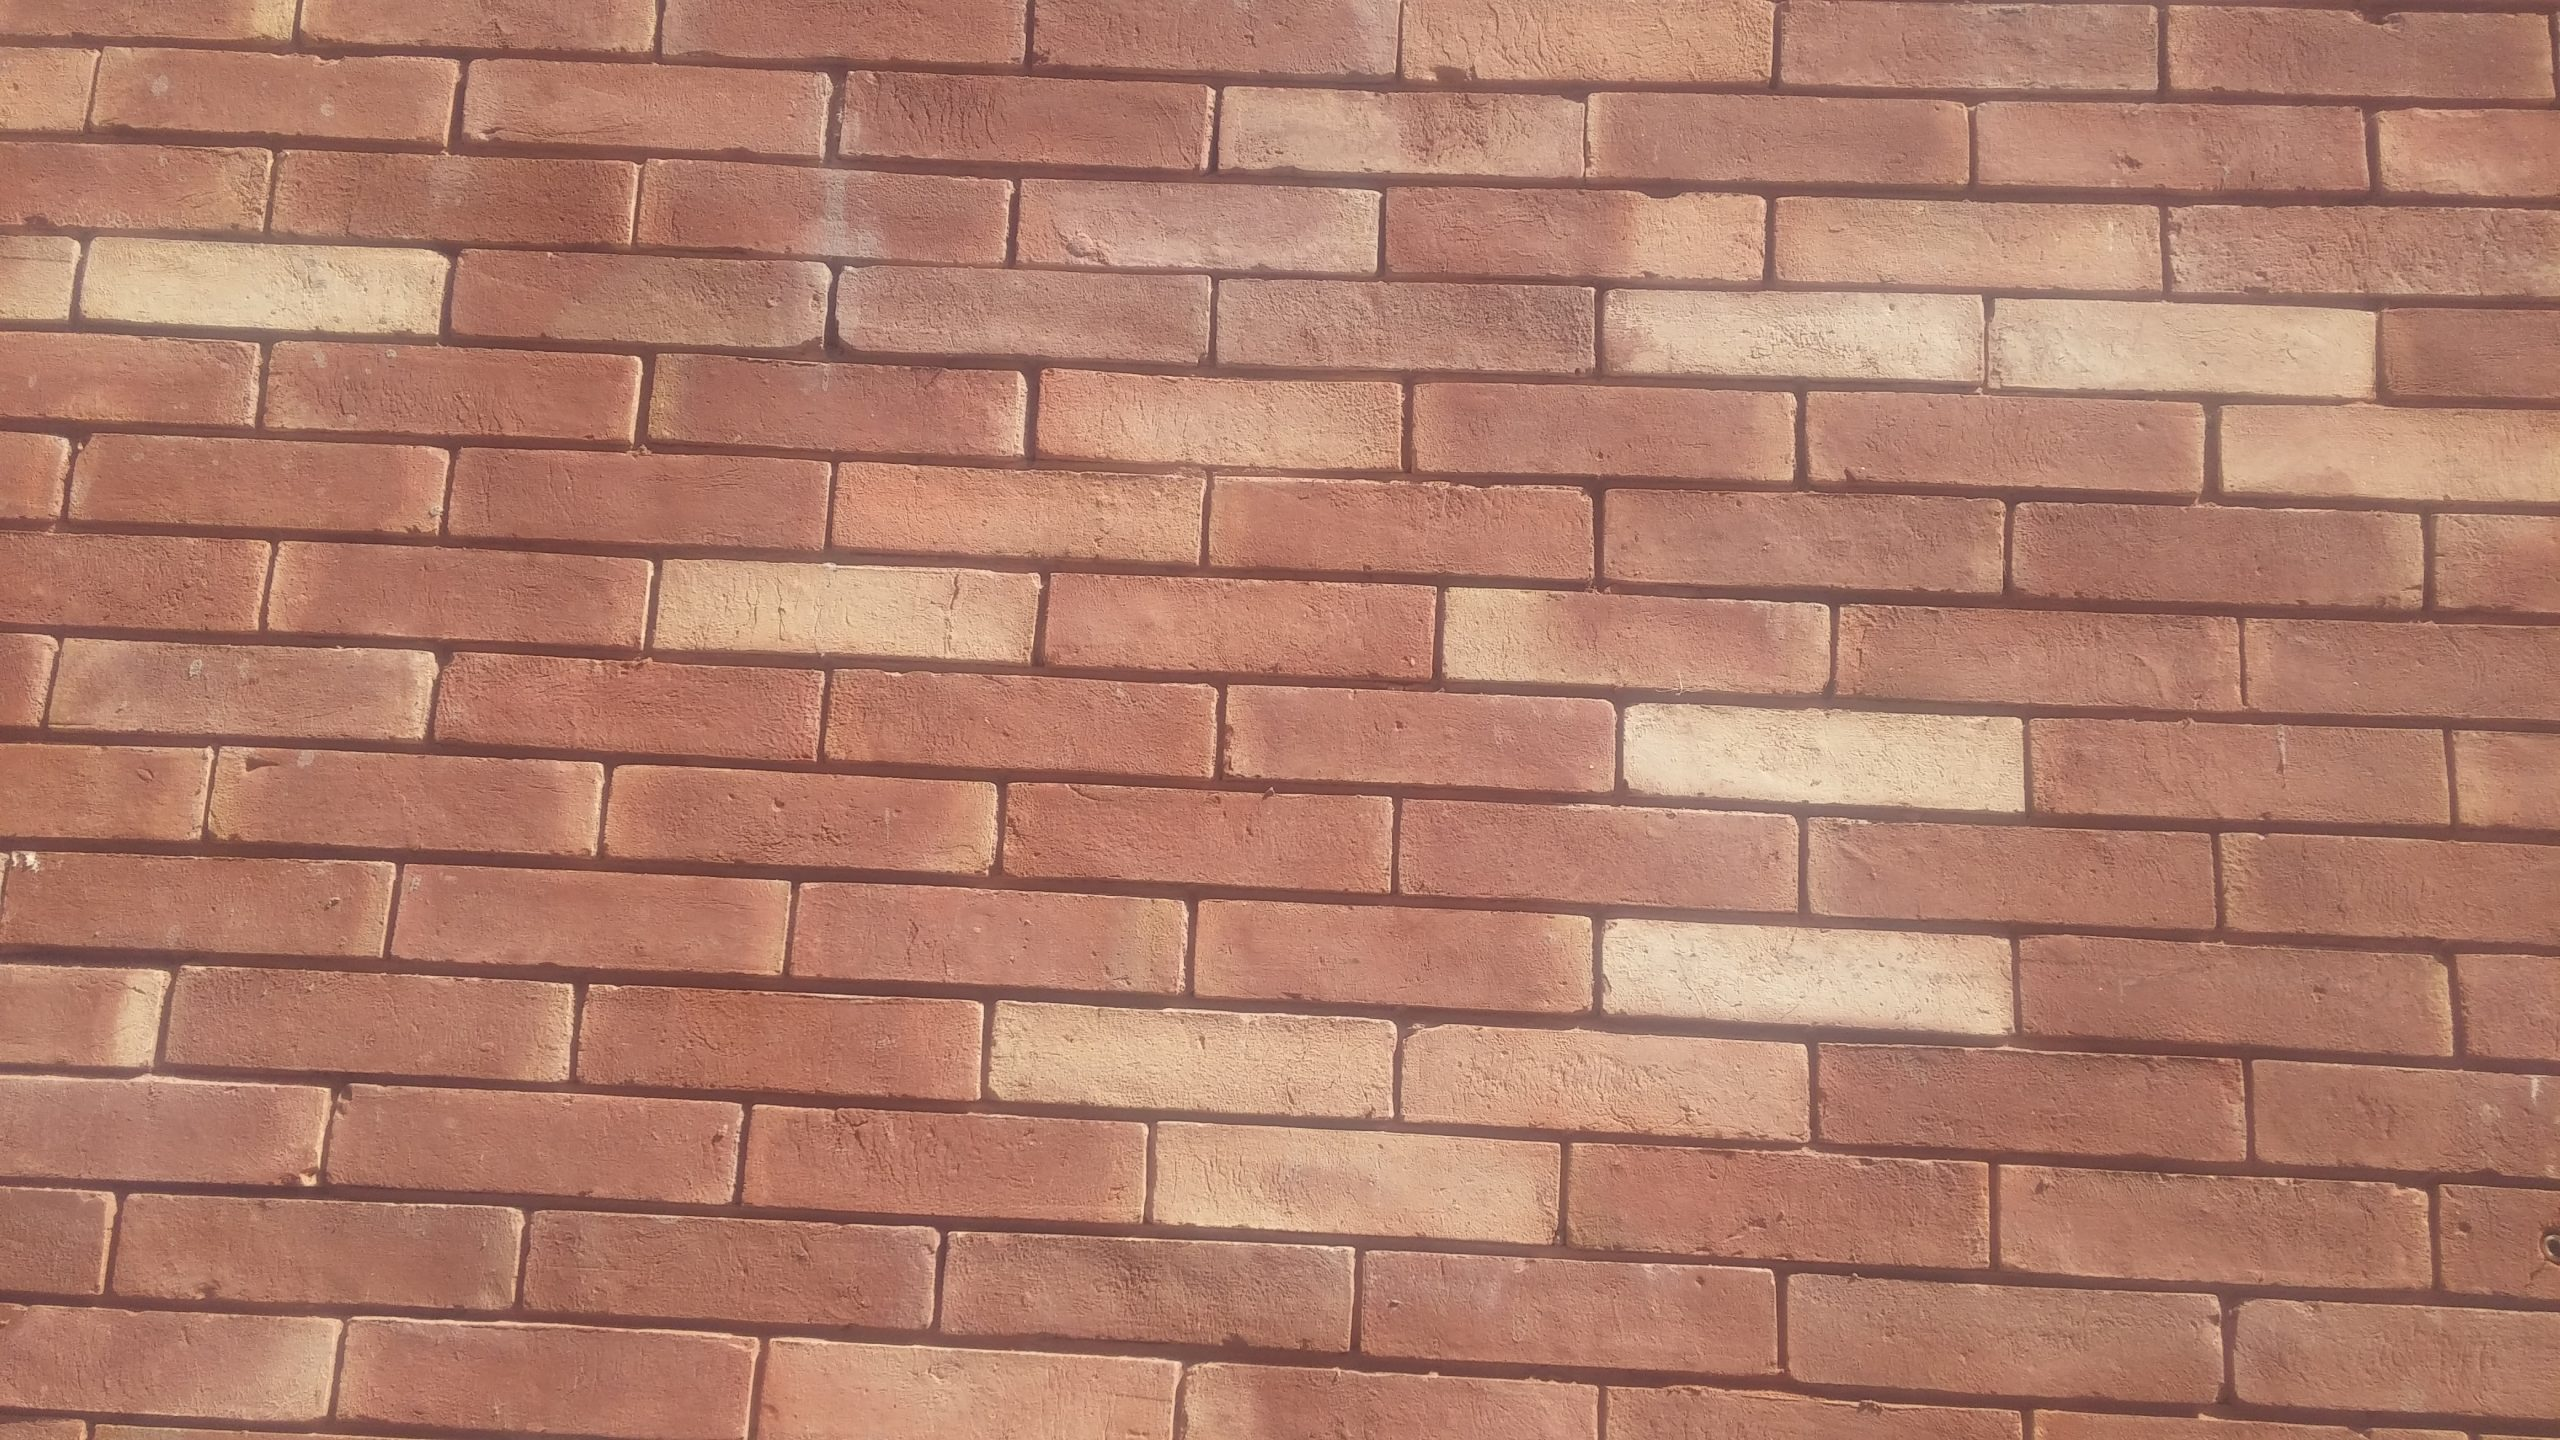 Gutka Tiles Rate in Lahore Pak Clay Tiles Lahore Brick Tiles Price in Pakistan Images (2)